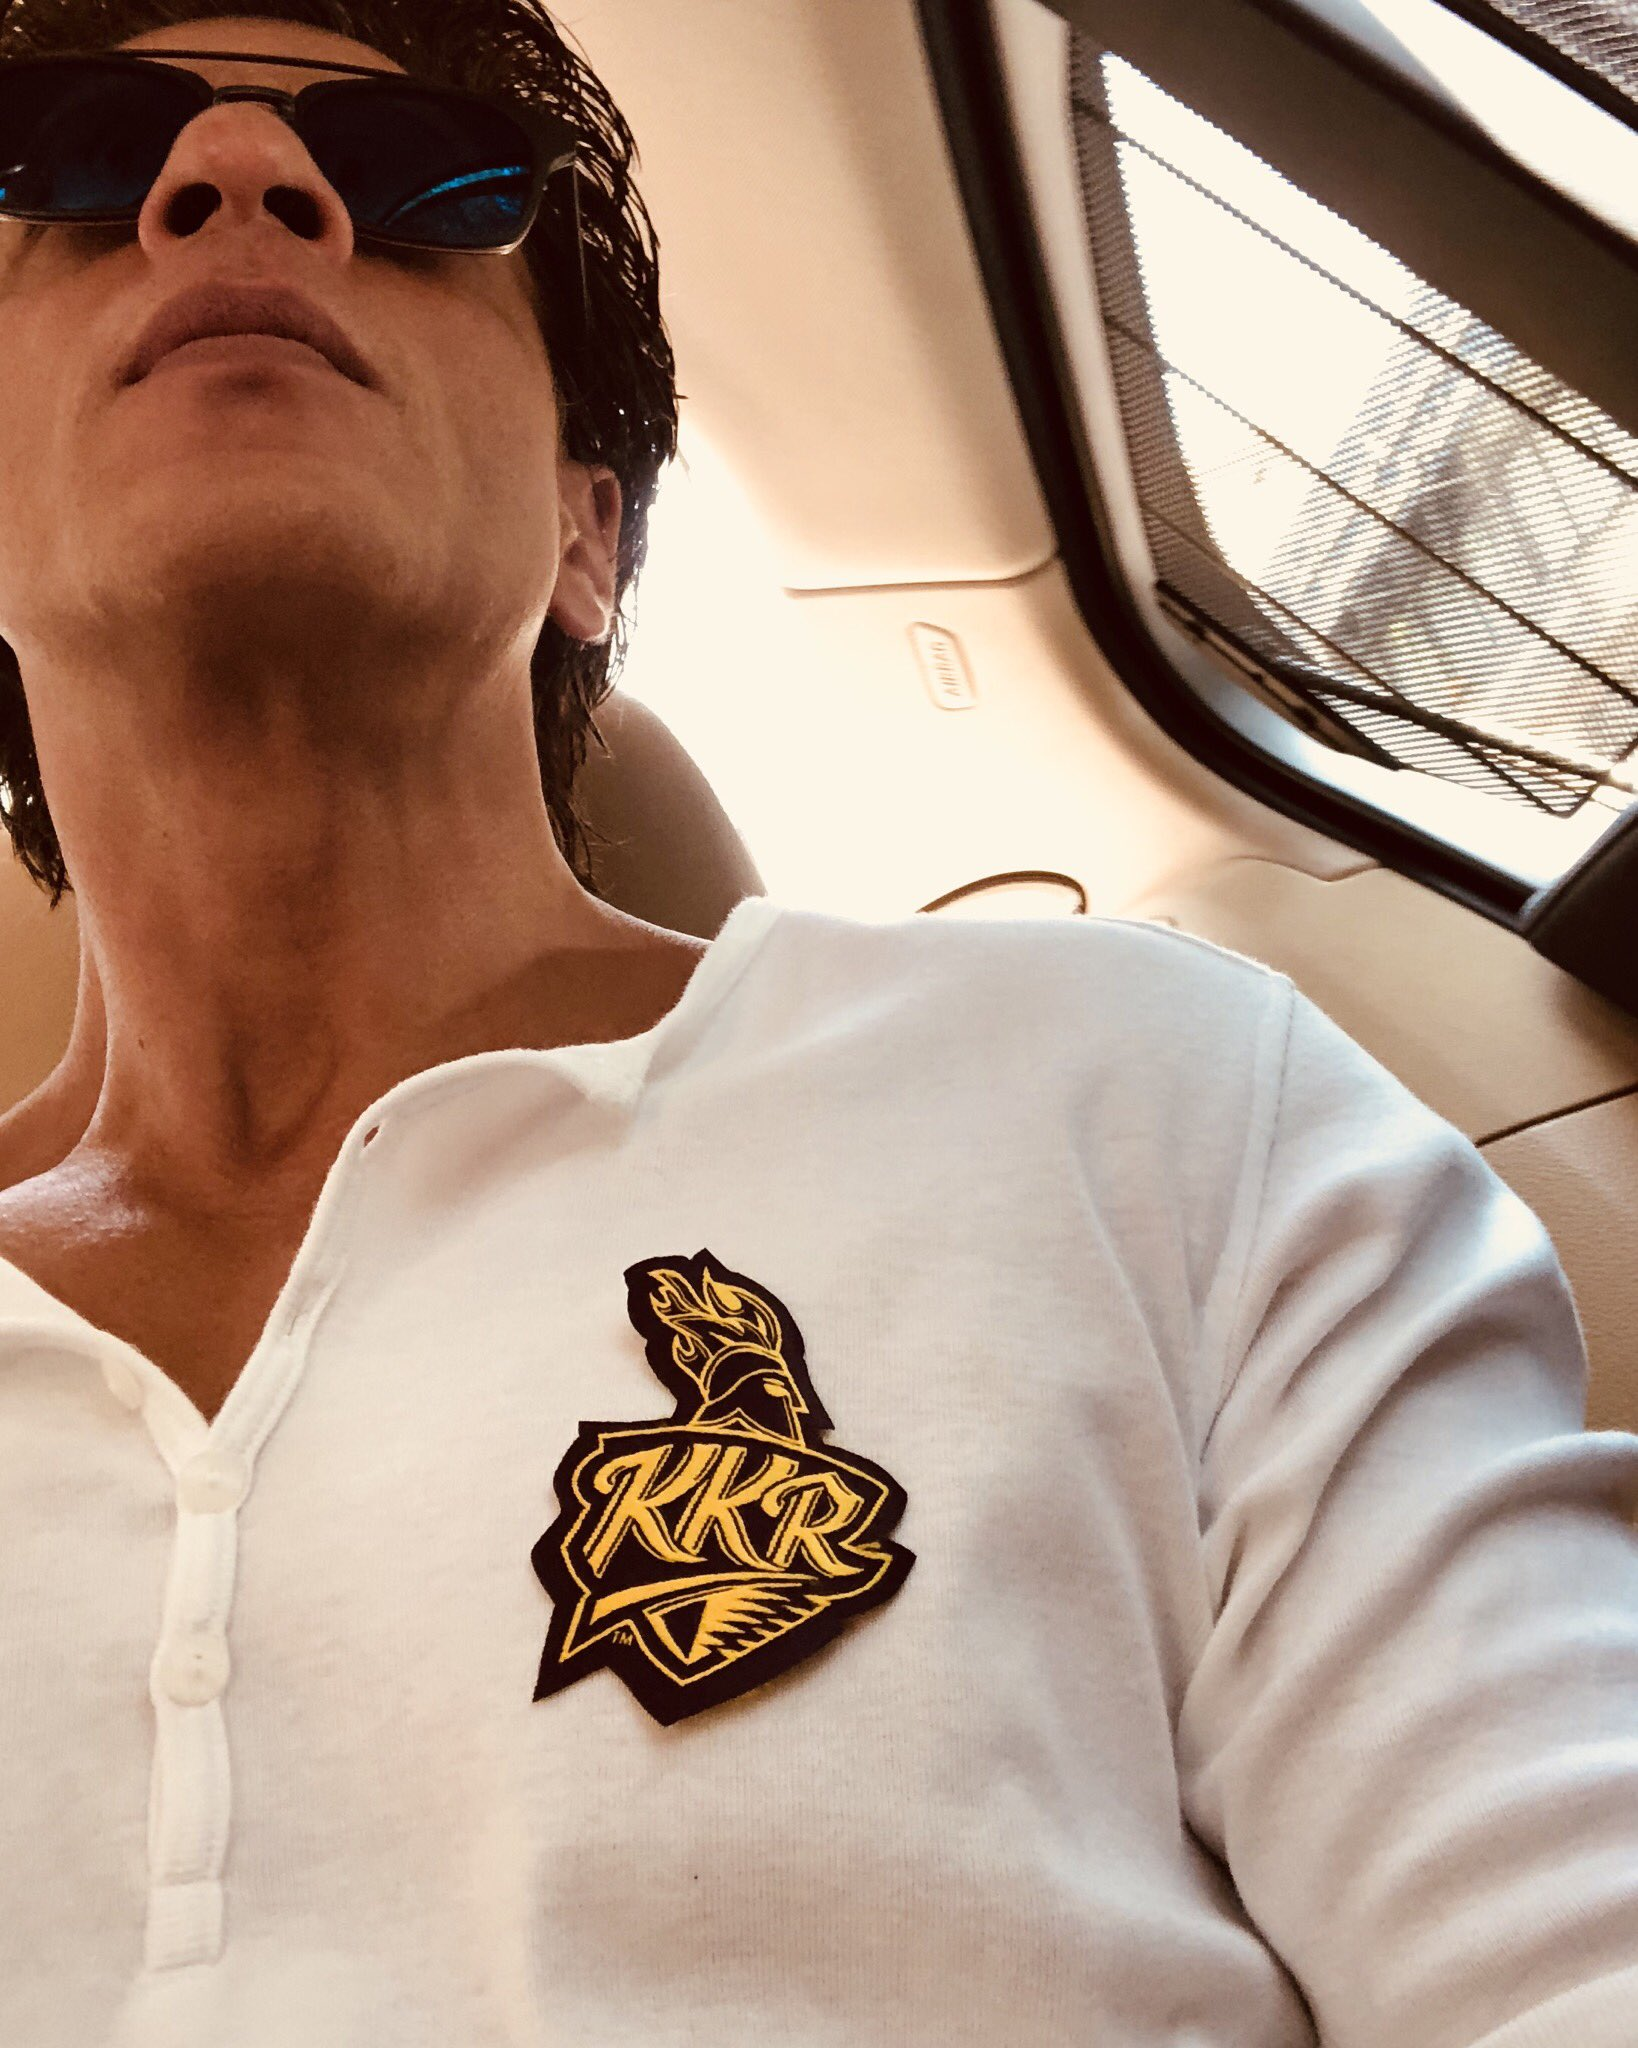 Kolkata see u at Eden. Let today's cheer be the loudest for KKR. https://t.co/oEtKwYFR88